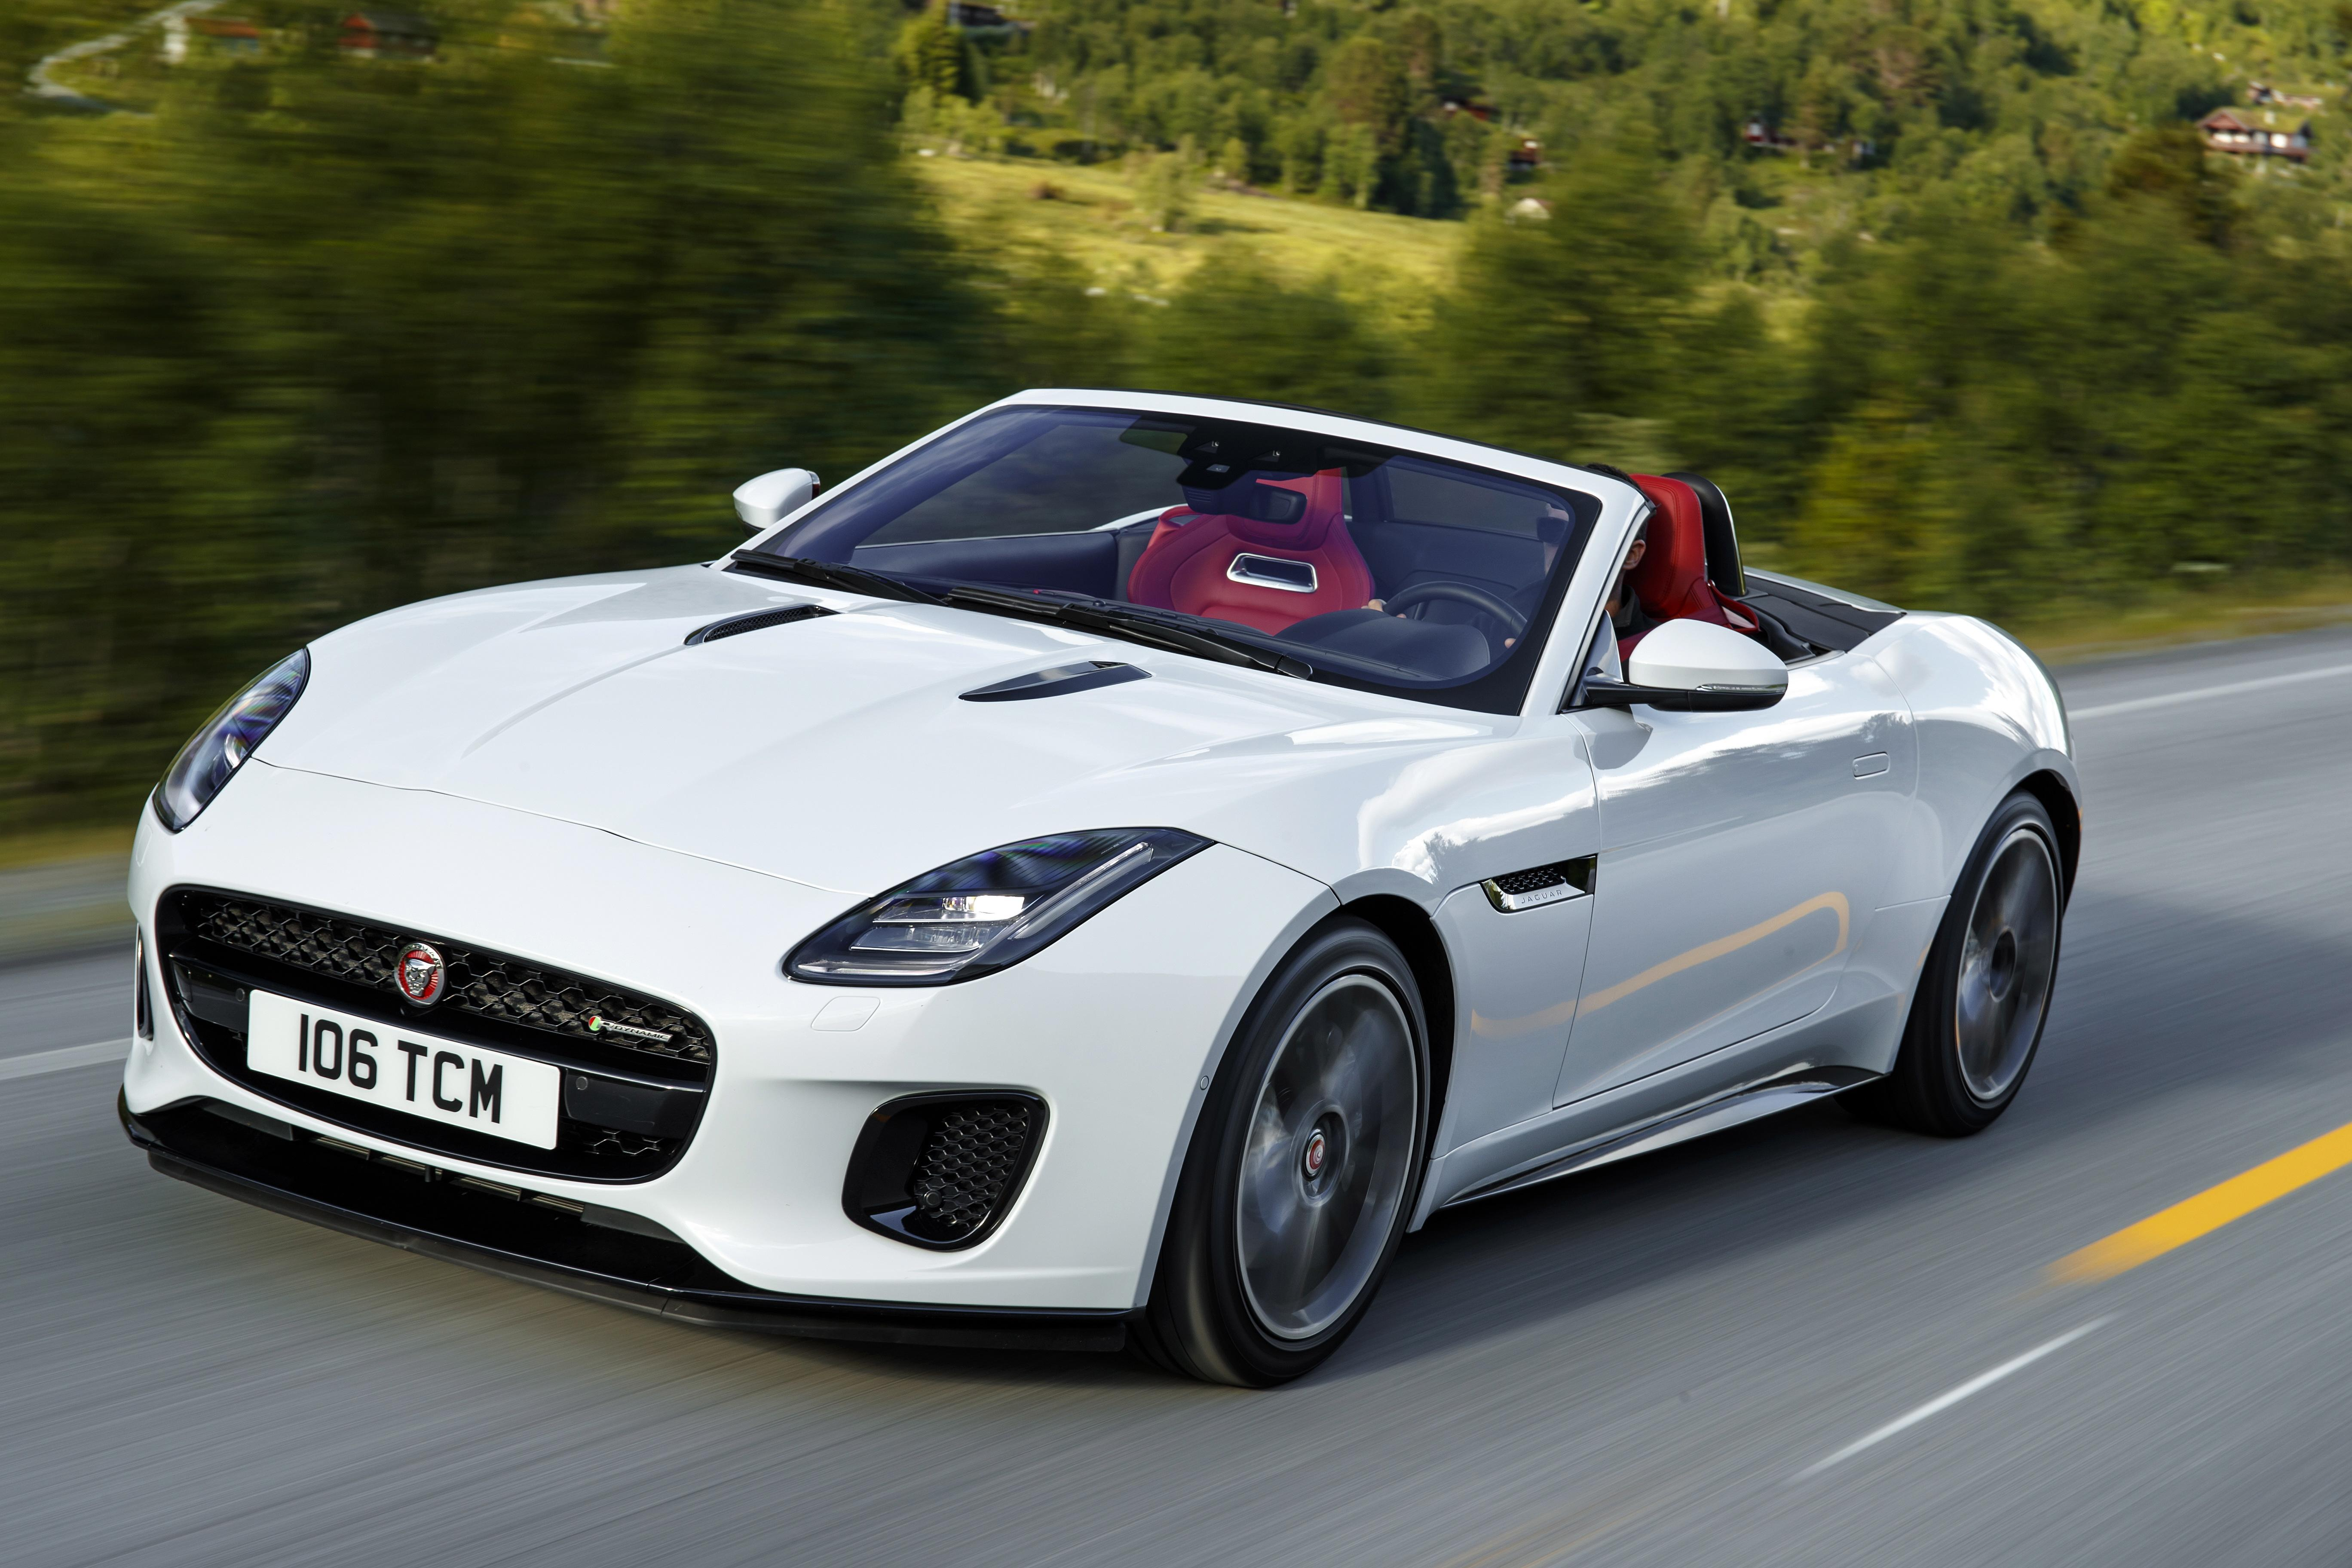 Jaguar F-Type Coupe interior specifications